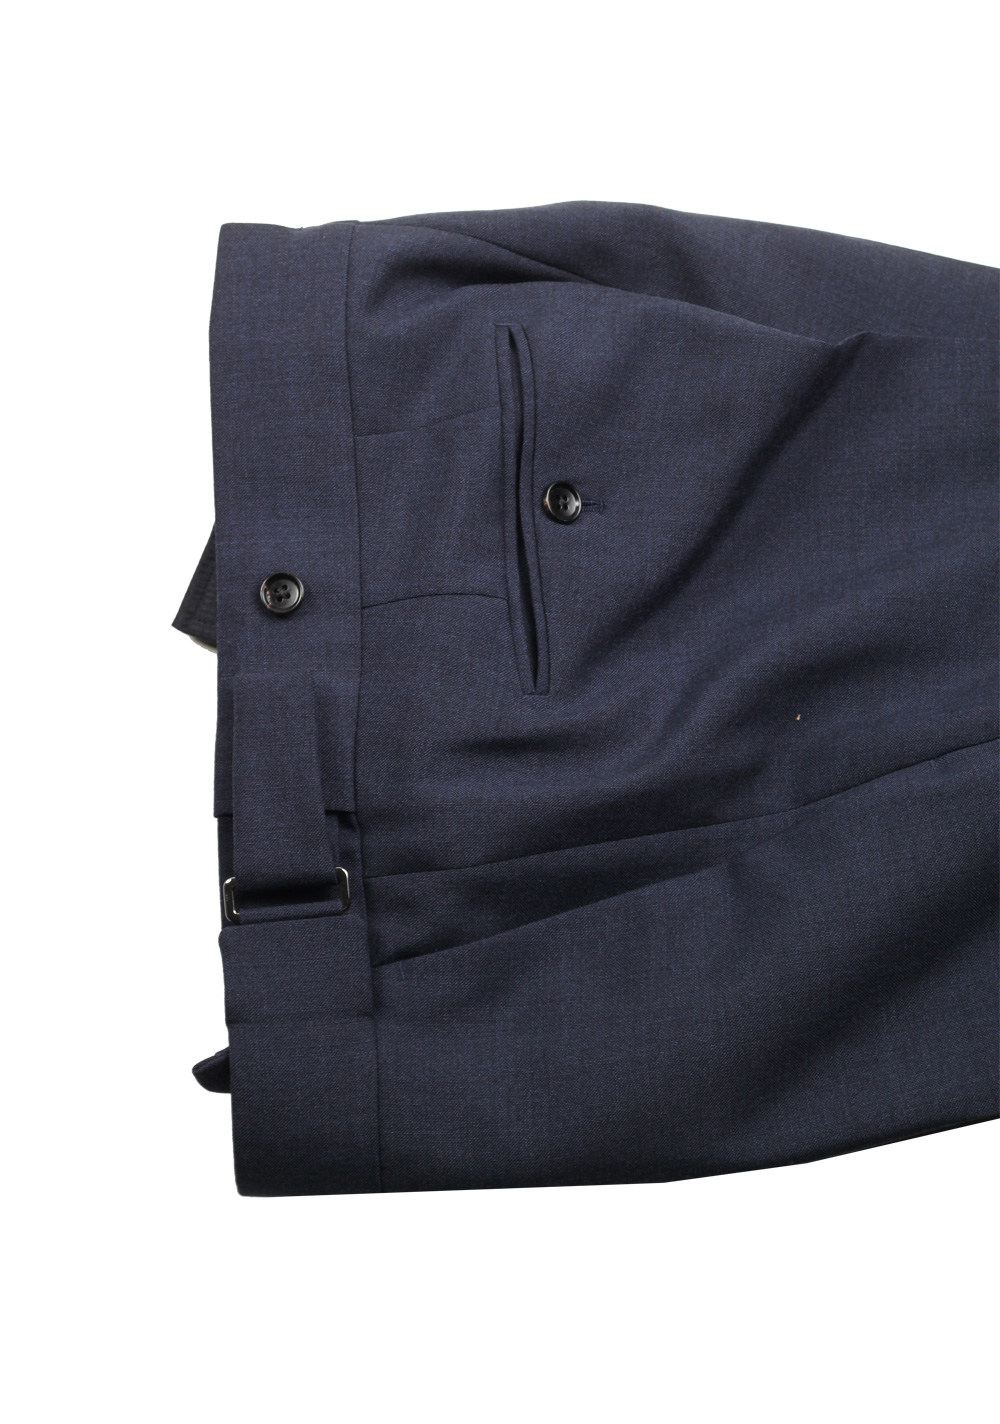 TOM FORD Atticus Solid Blue Suit Size 46 / 36R U.S. | Costume Limité